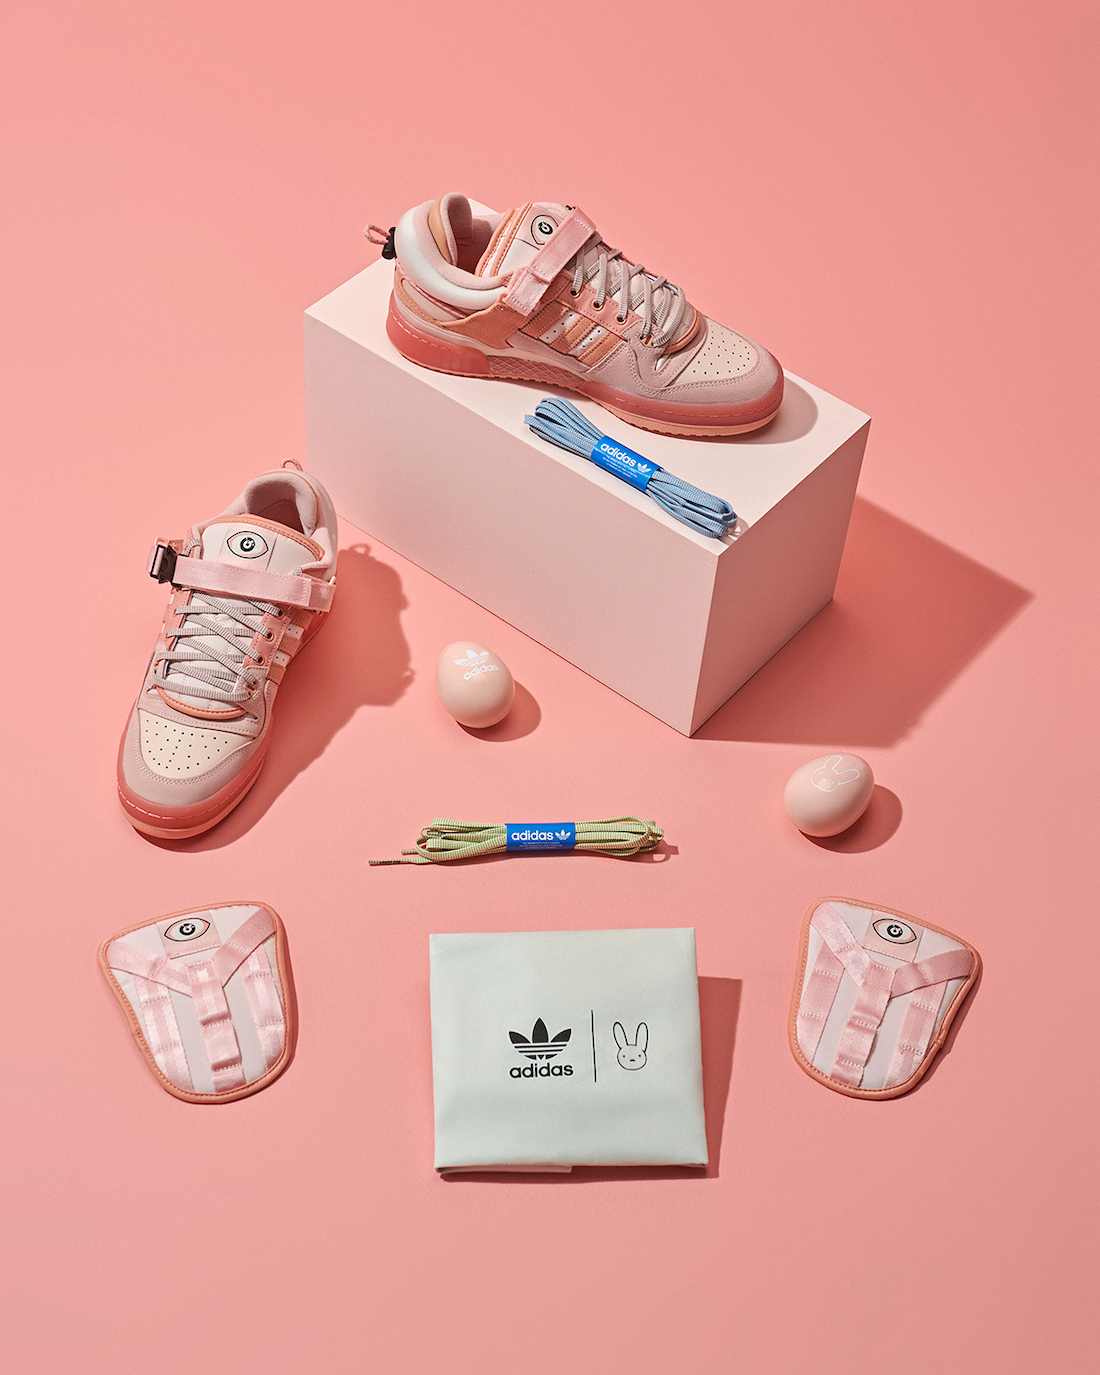 Bad-Bunny-adidas-Forum-Buckle-Low-Easter-Egg-GW0265-Release-Date-2